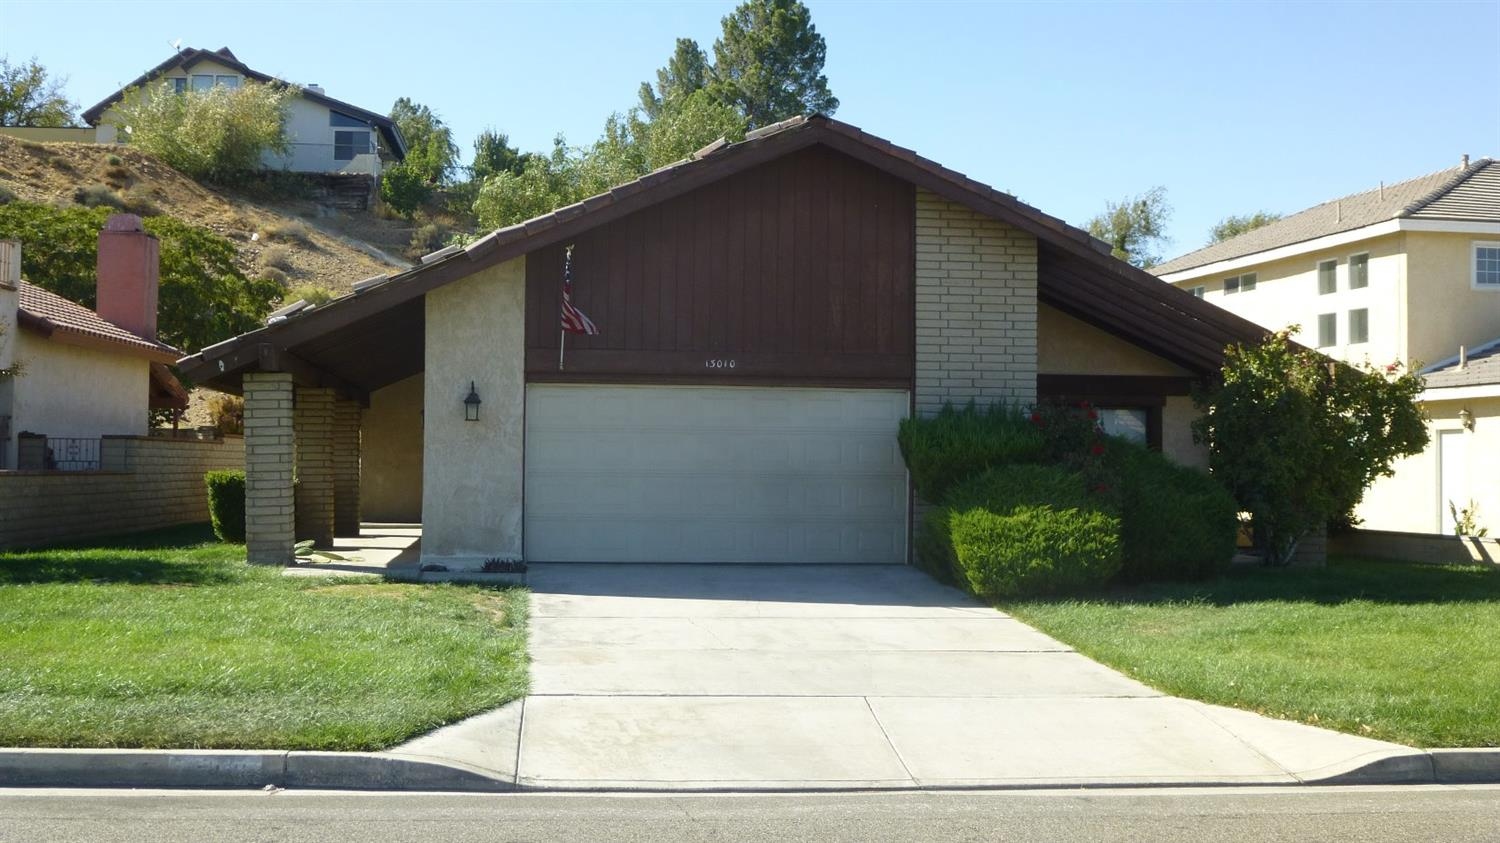 13010 Spring Valley Pkwy, Victorville, CA 92395